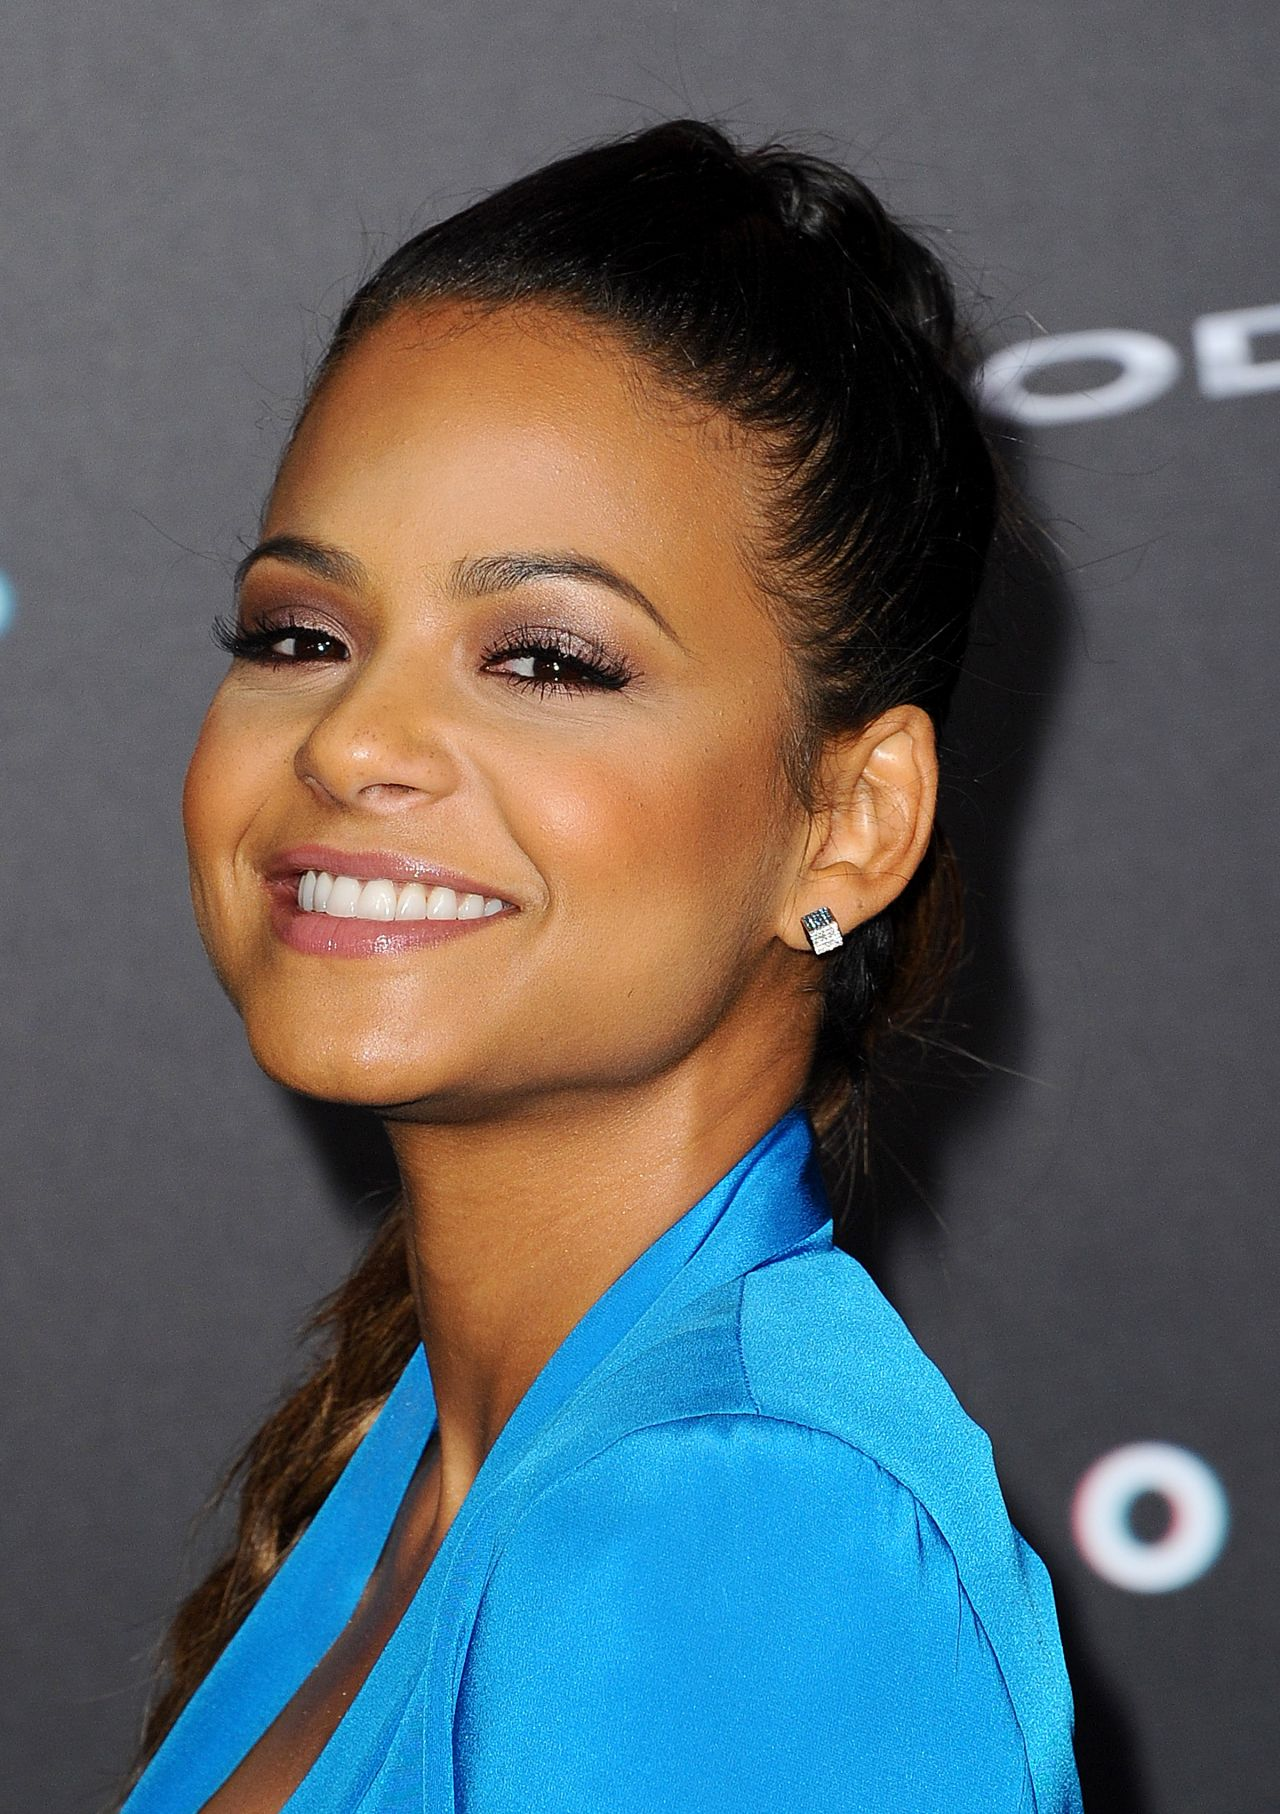 Christina Milian Focus Movie Premiere In Los Angeles